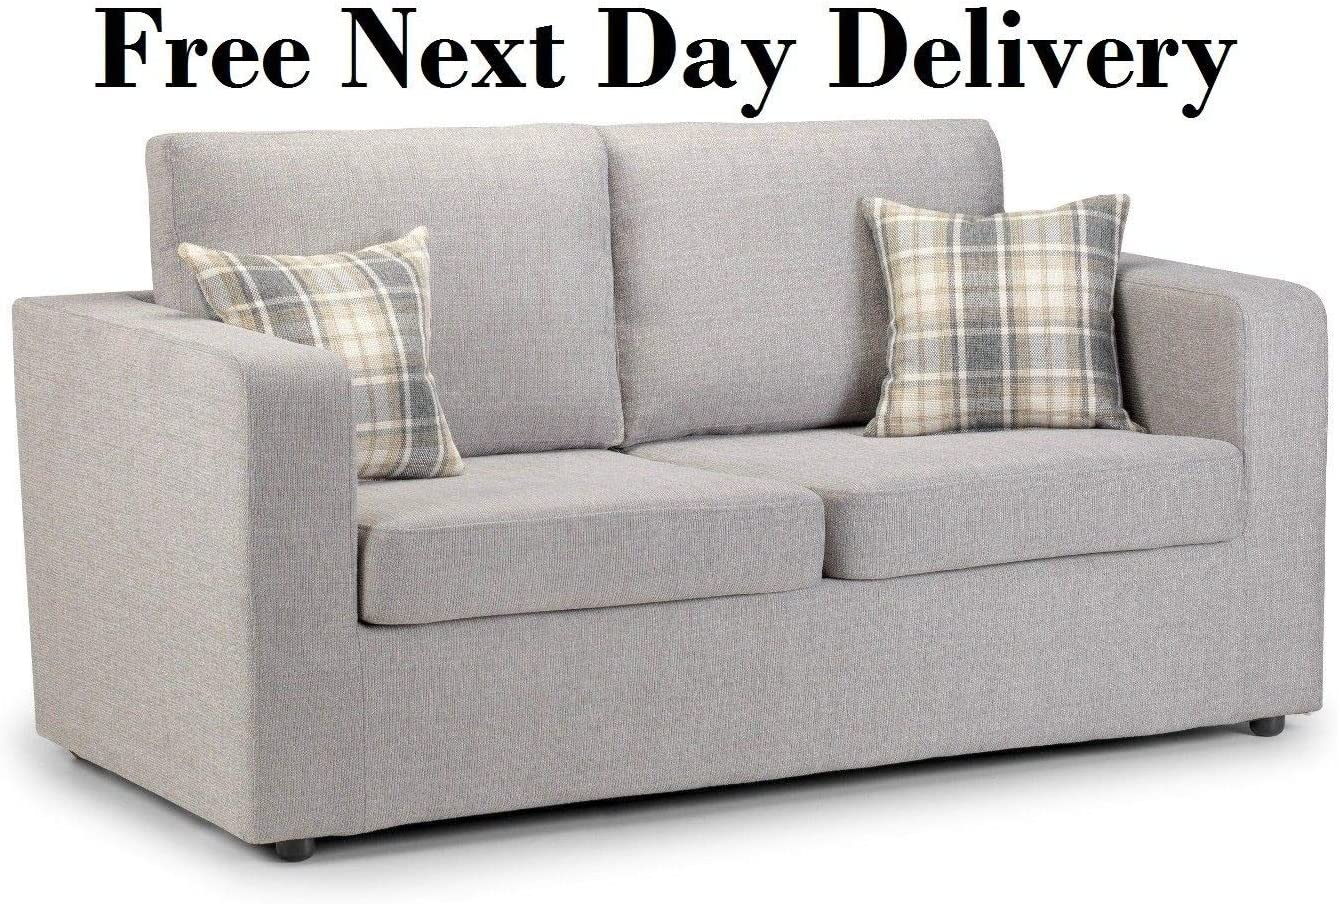 A Modern Deluxe Metal Action Sofa Bed in Silver Fabric & Cushions